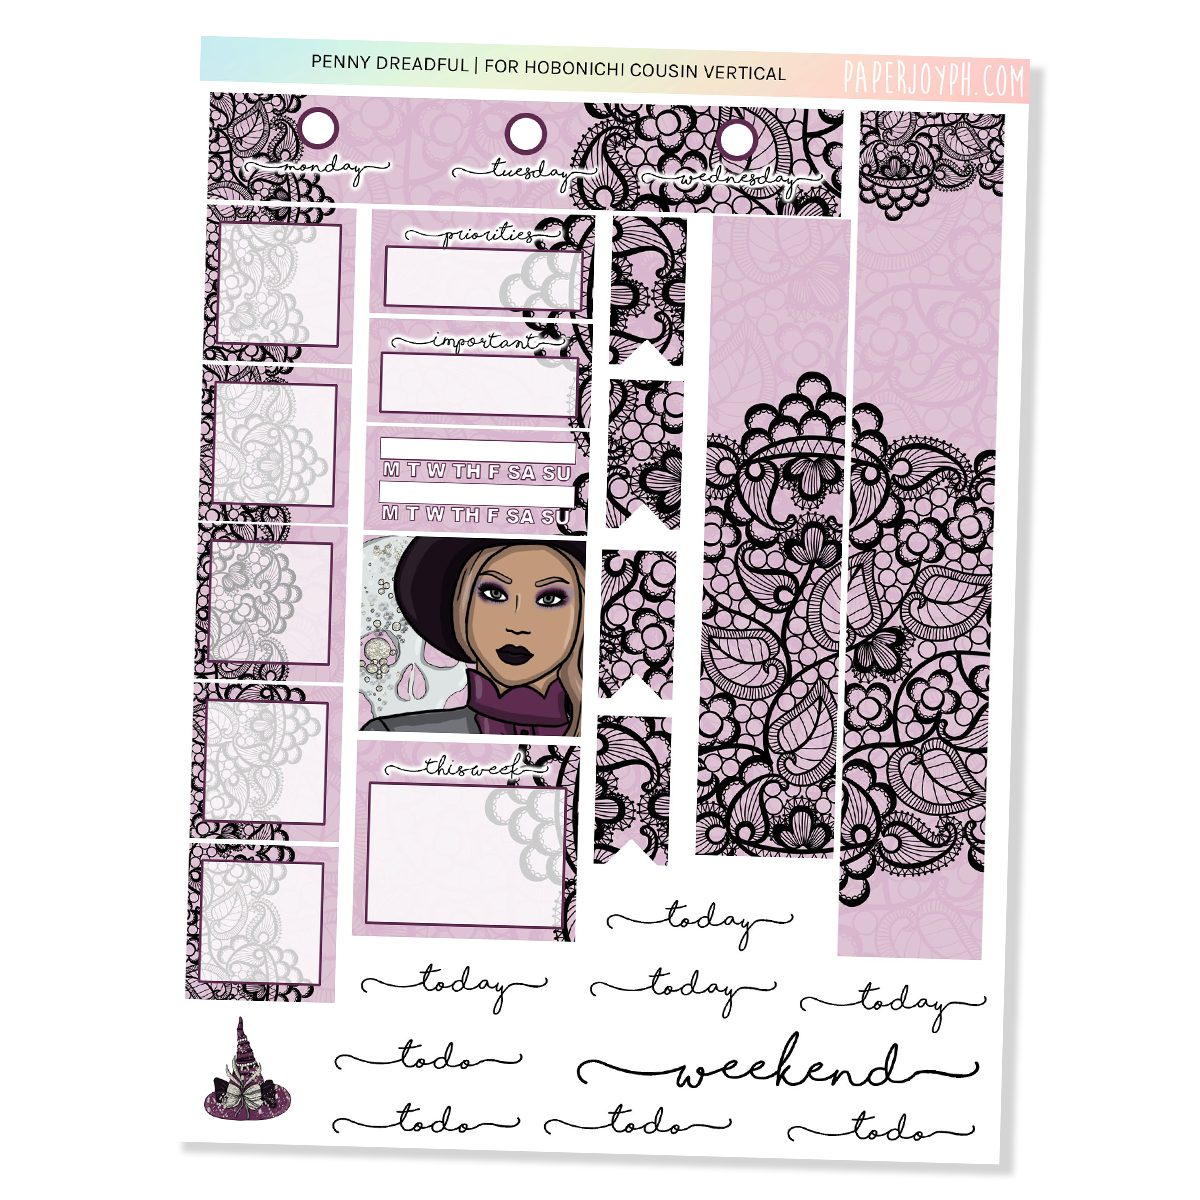 HOBONICHI COUSIN | VERTICAL STICKER KIT | PENNY DREADFUL